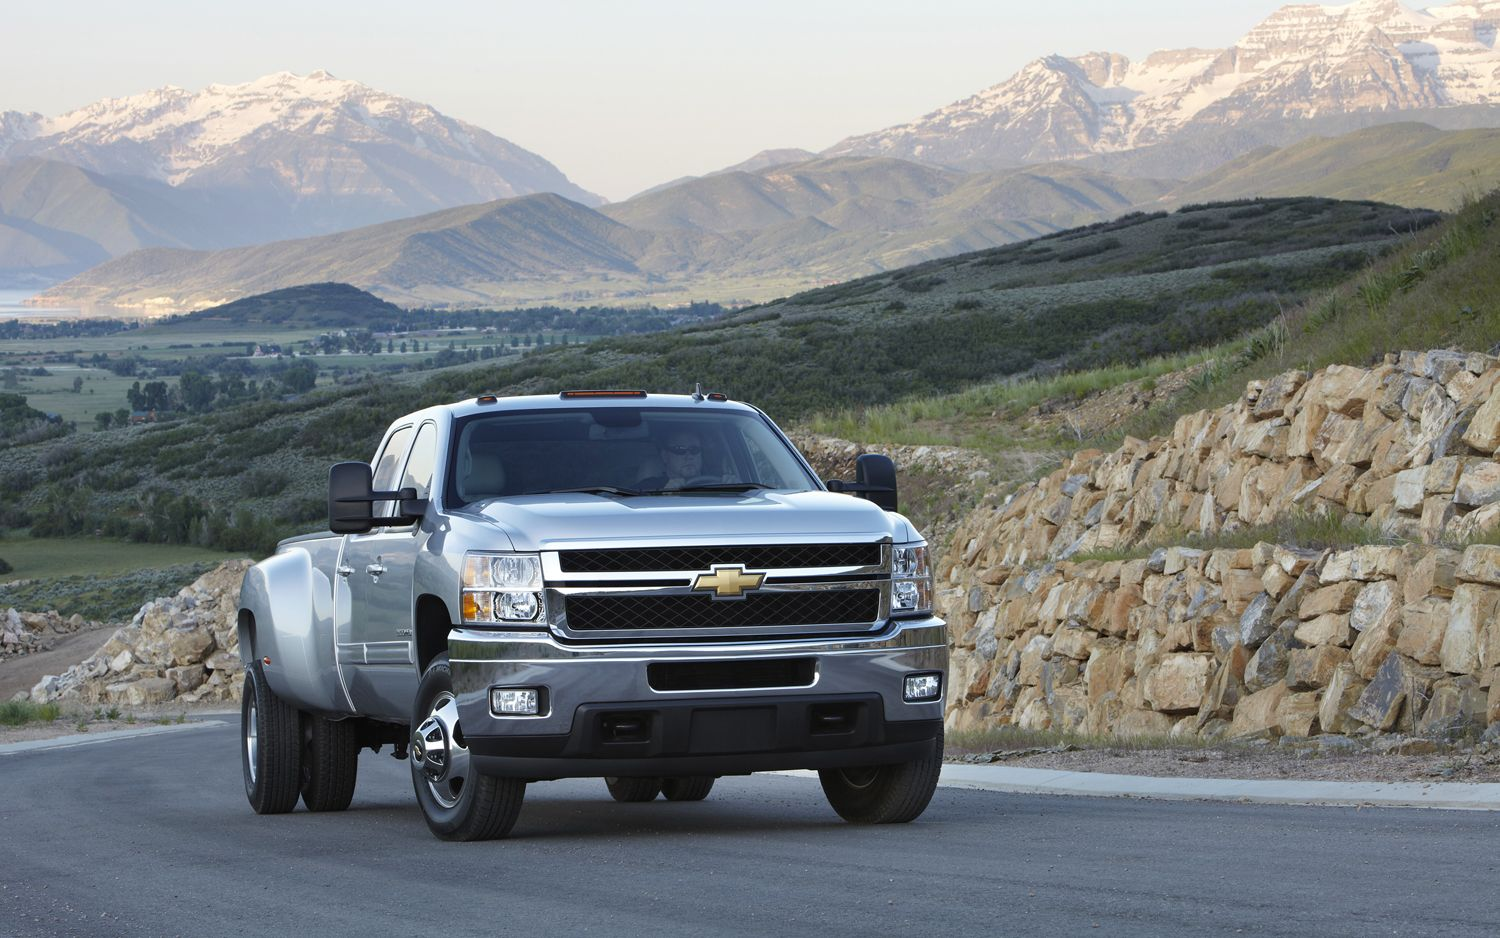 """Chevrolet Siilverado truck that has been """"lifted"""